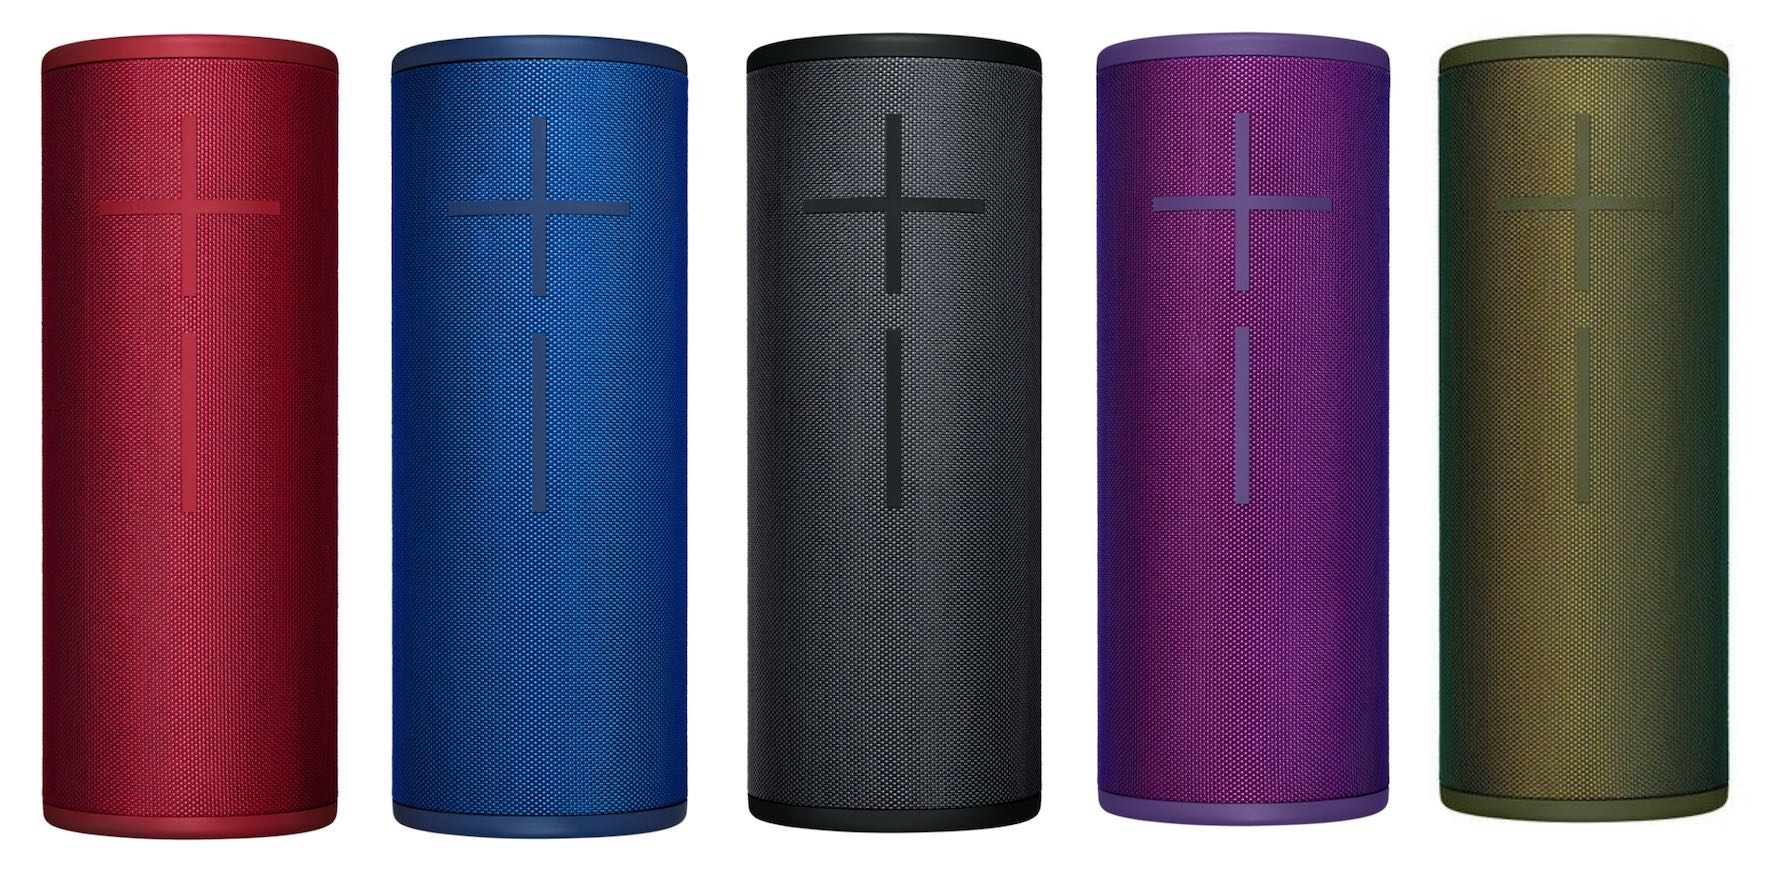 The Ultimate Ears MEGABOOM 3 wireless speaker is viable in the following colours